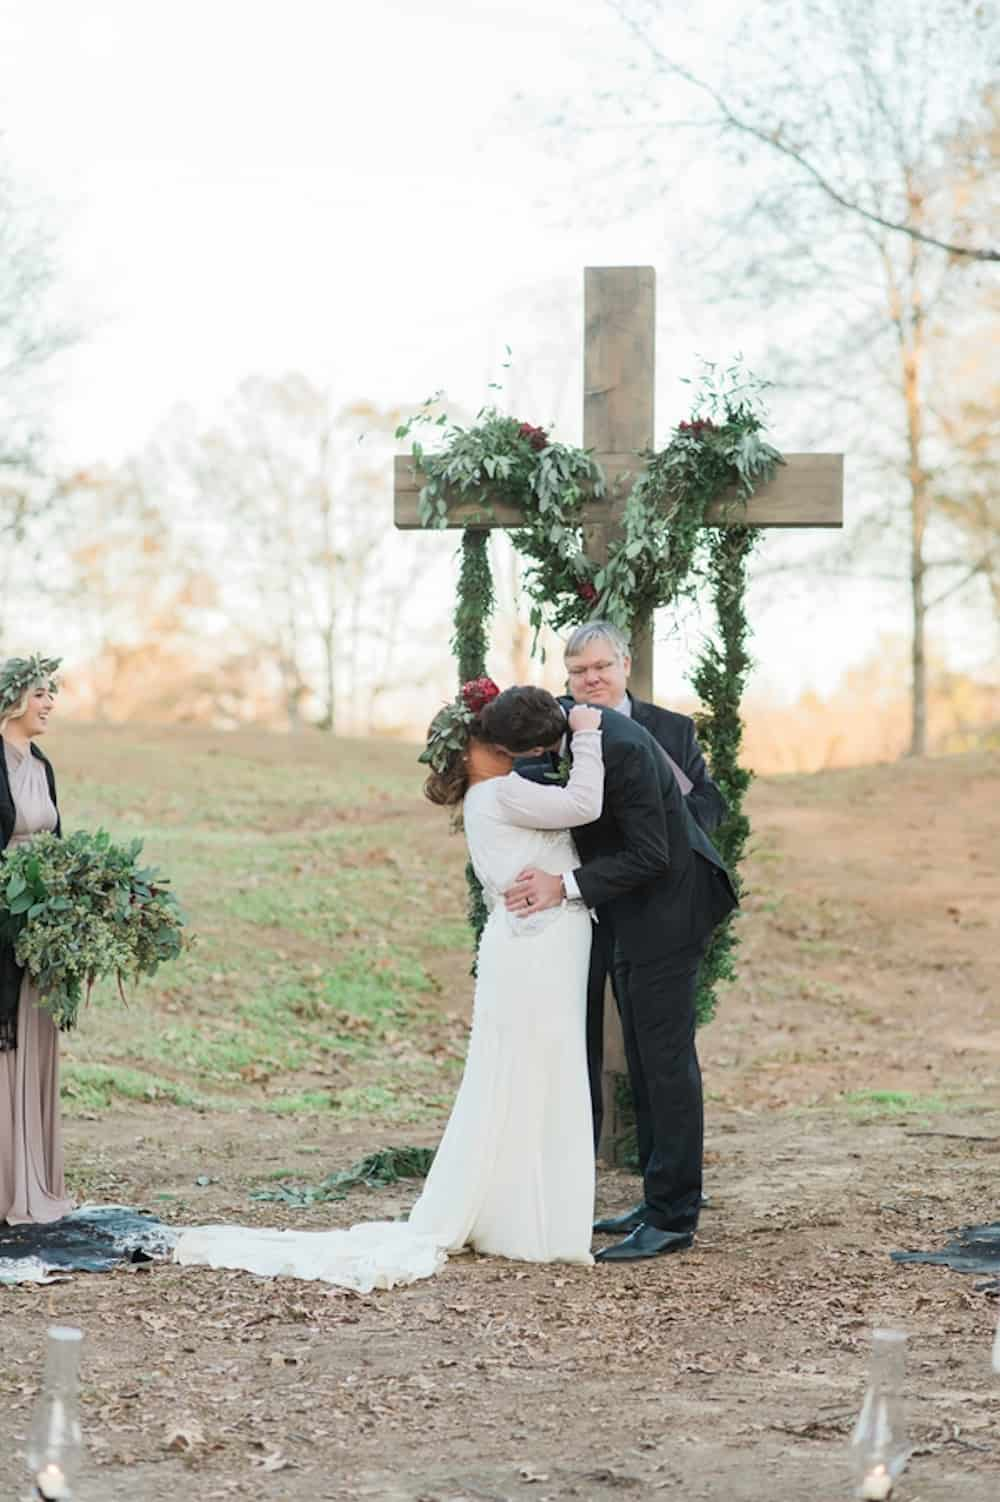 10a-boland_bissey_laurencoffeyphotography_lcpbisseyhighlights190_low